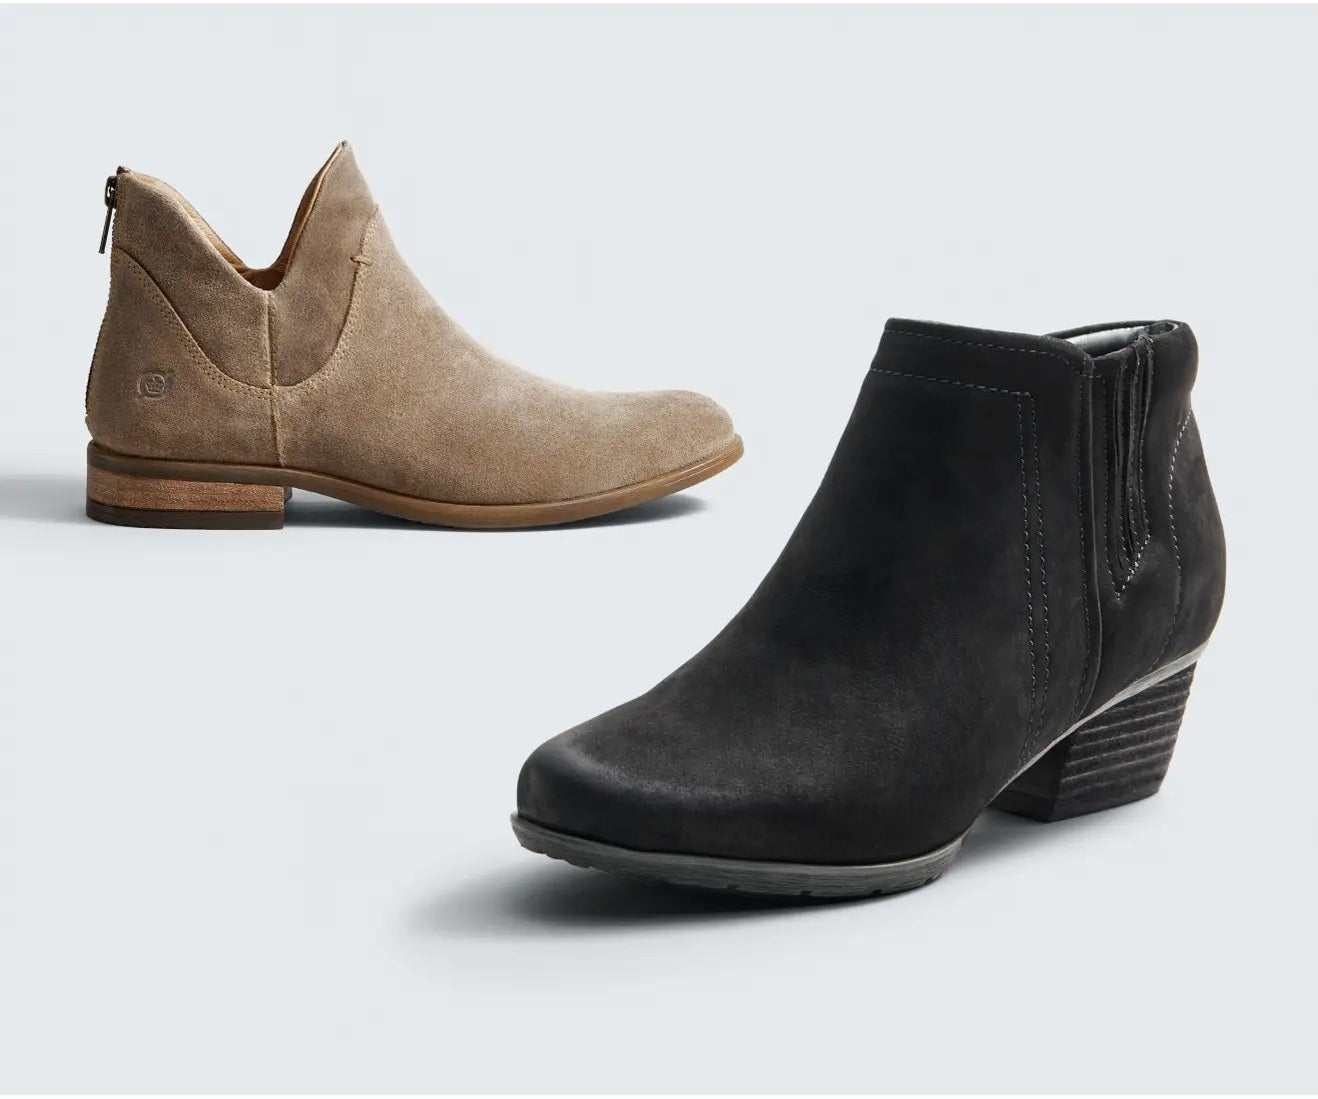 Two of the booties, on in brown and one in black